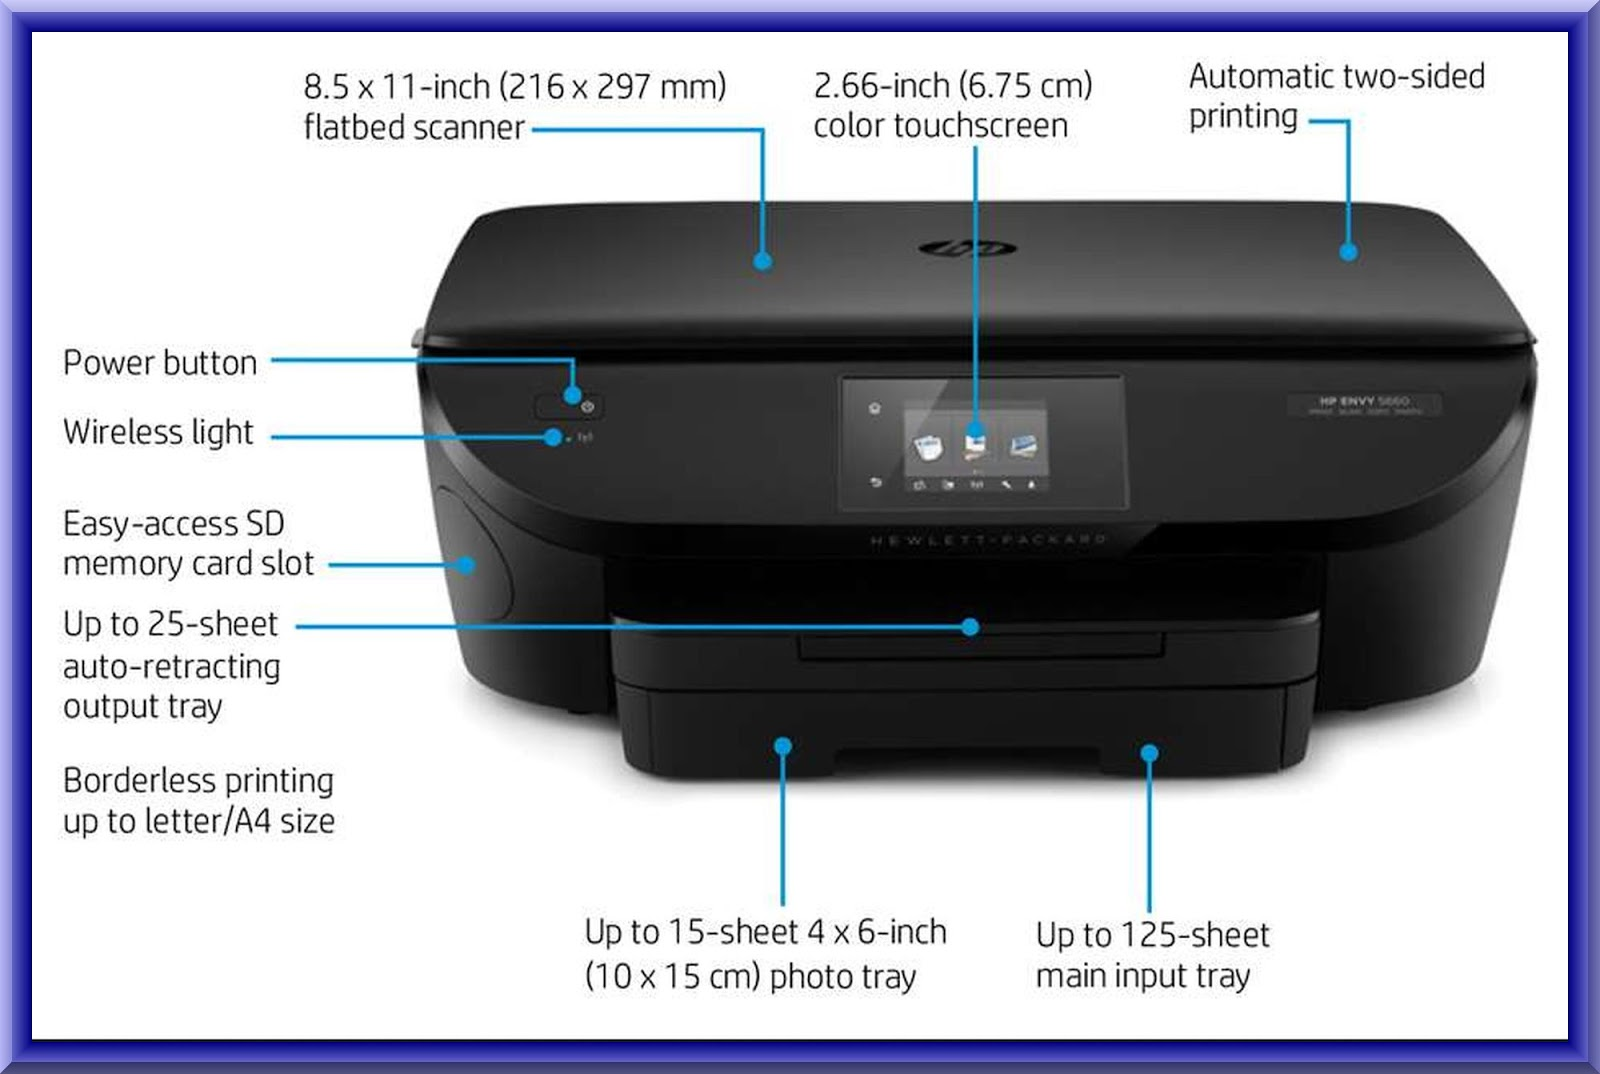 how to get an internet connect to hp printer